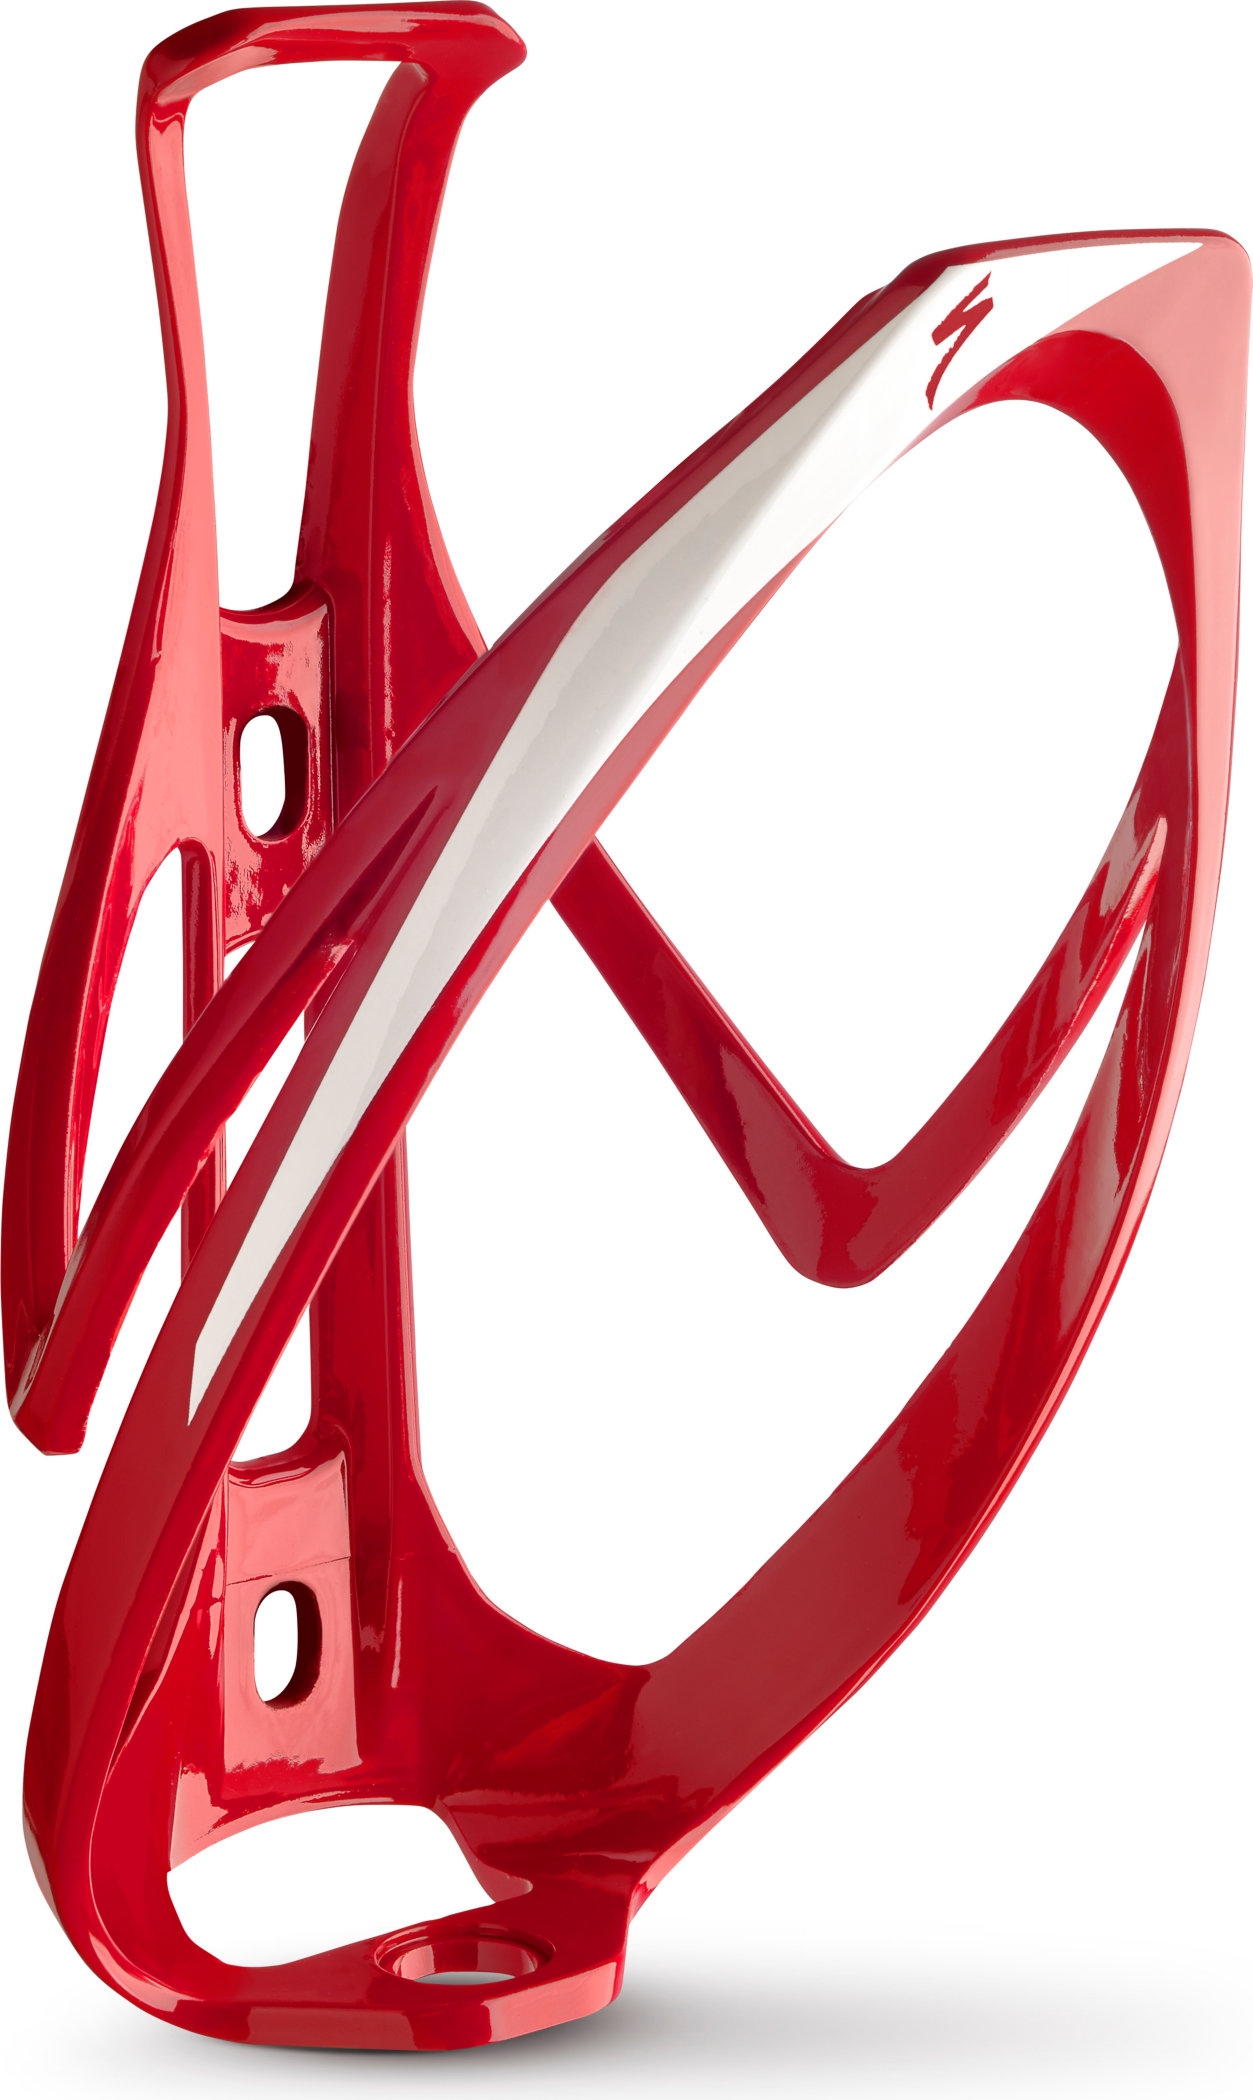 SPECIALIZED RIB CAGE II RD/MTN RED/WHT - Bikedreams & Dustbikes